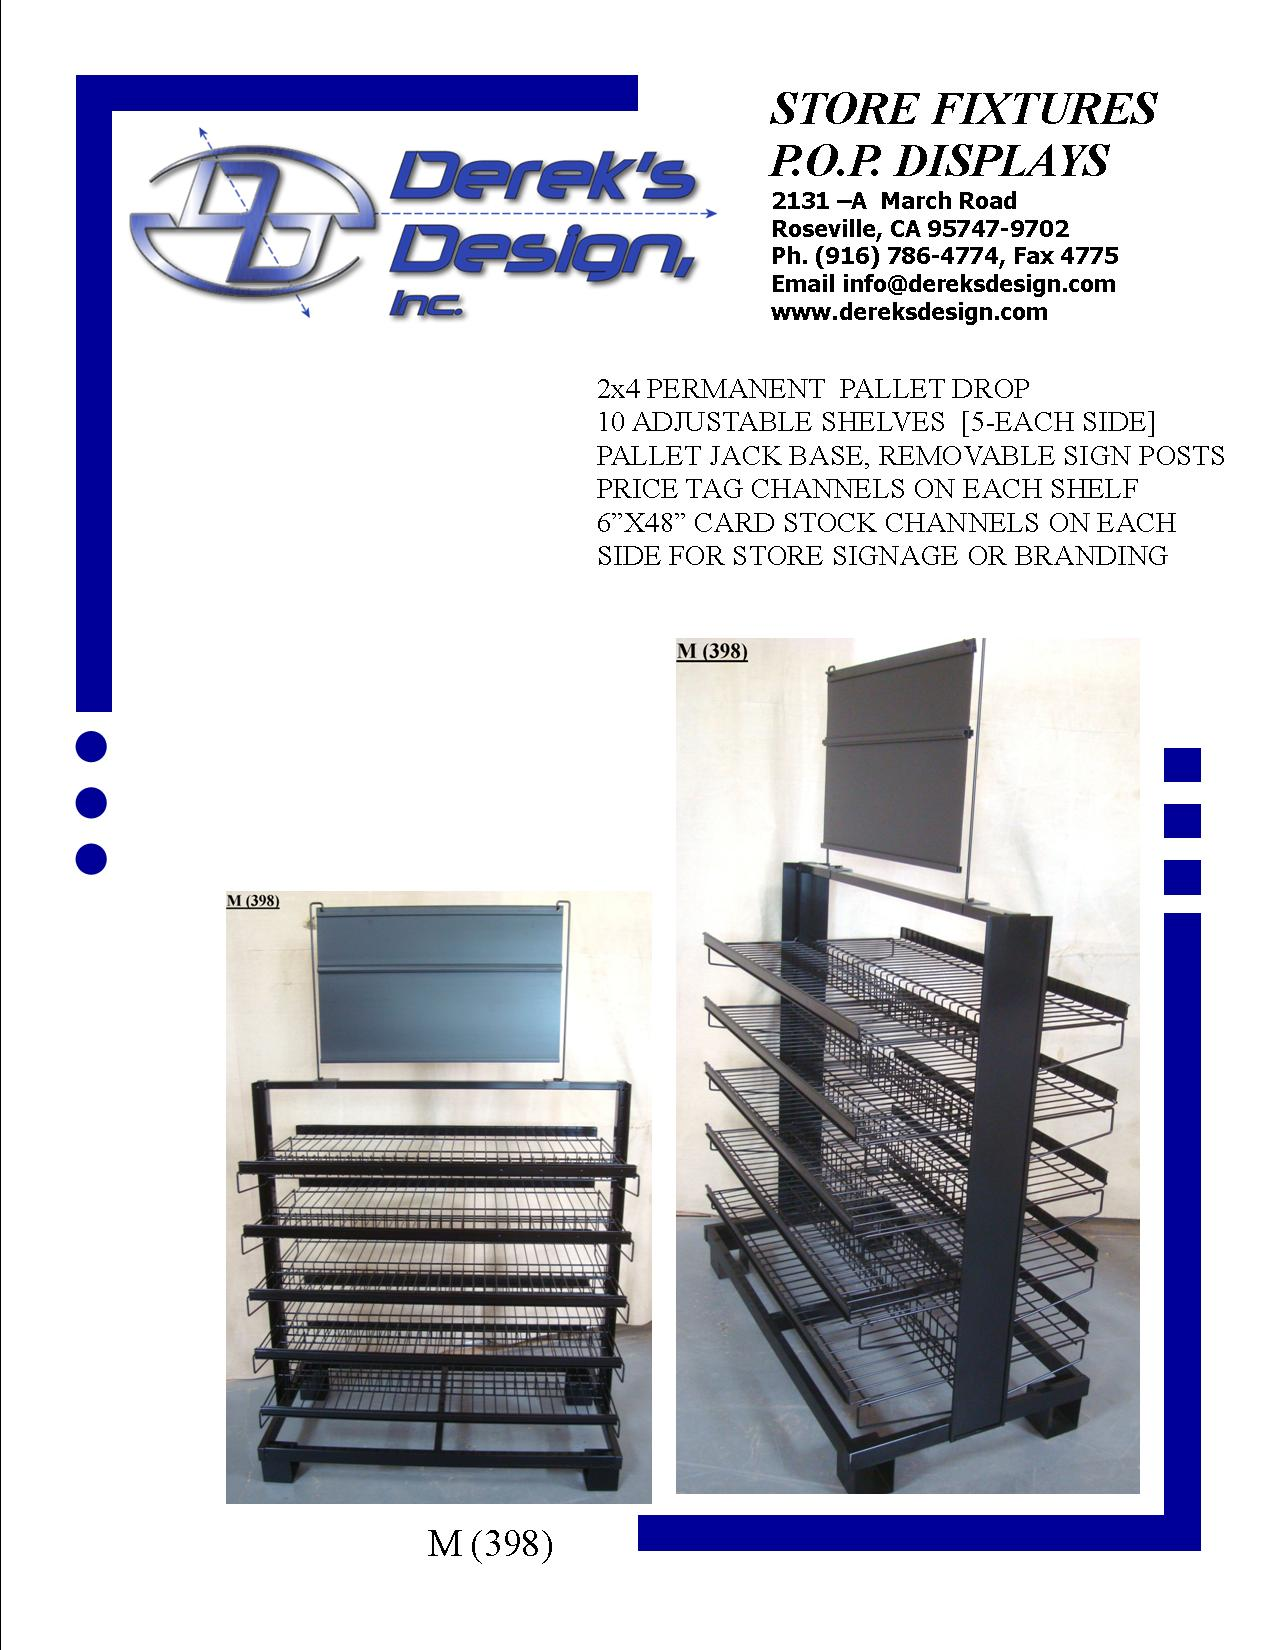 """<A HREF=""""MAILTO:ORDERS@DEREKSDESIGN.COM?SUBJECT=M%20(398)&BODY=http://www.dereksdesign.com/gallery/metal-and-wire-displays/m-398blank/"""">CLICK HERE FOR INQUIRY </A>"""